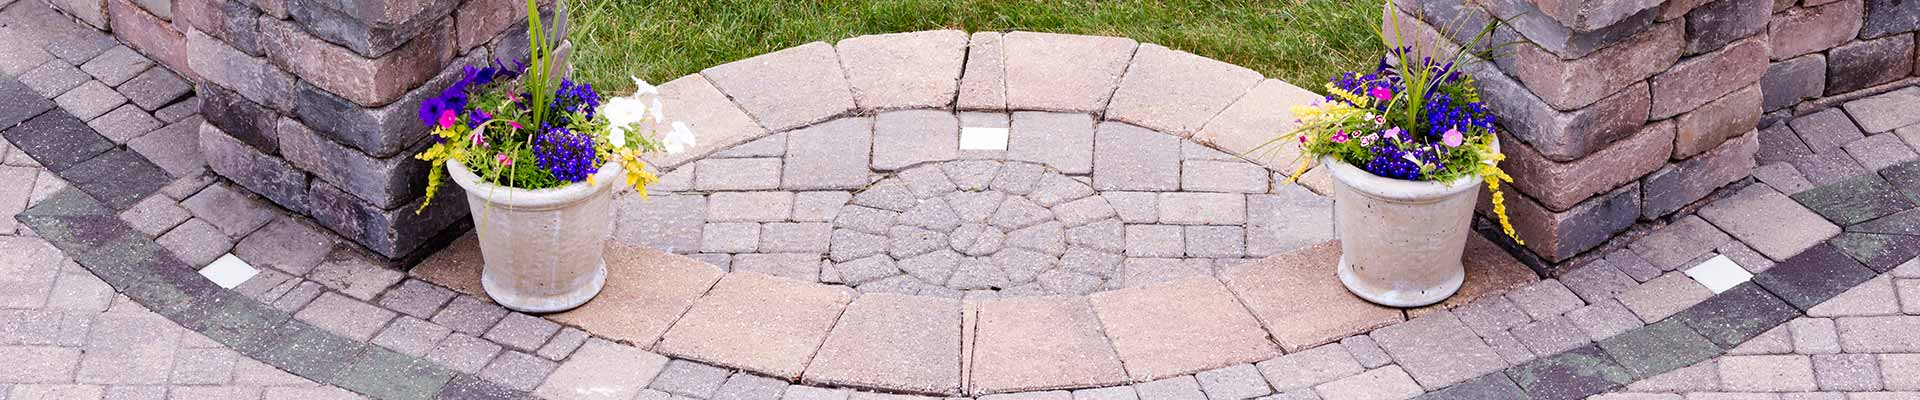 Landscape Bricks - Paver - Retaining Wall - Fire Pit - Patio Stones - Keon Garden Centre - Moose Jaw